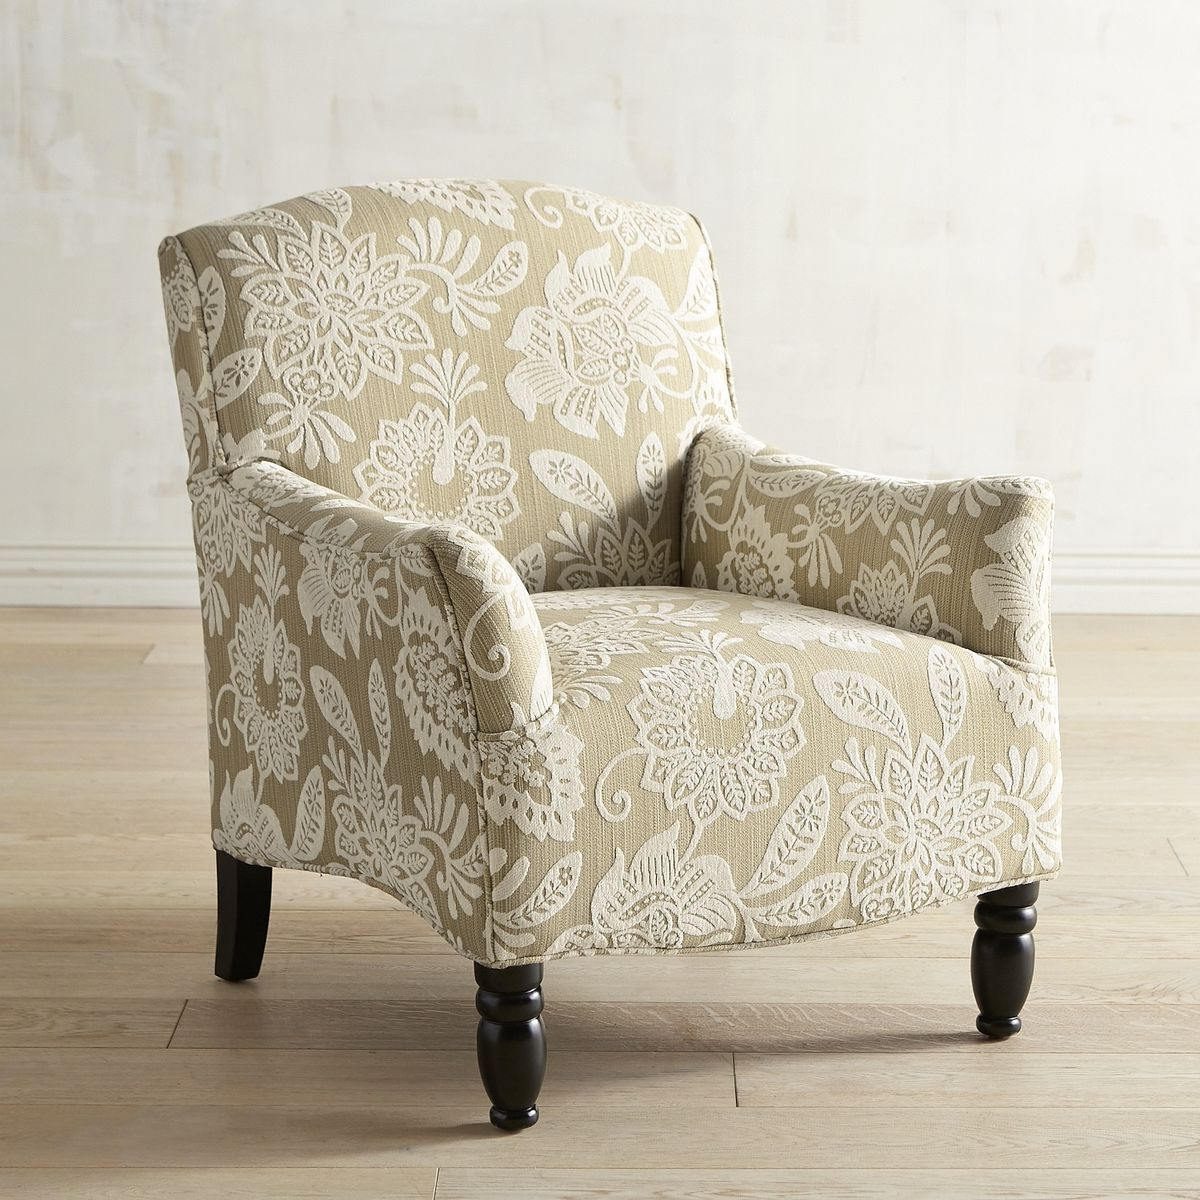 Frankie Tan Chenille Floral Chair | Pier 1 Imports | First Place ...